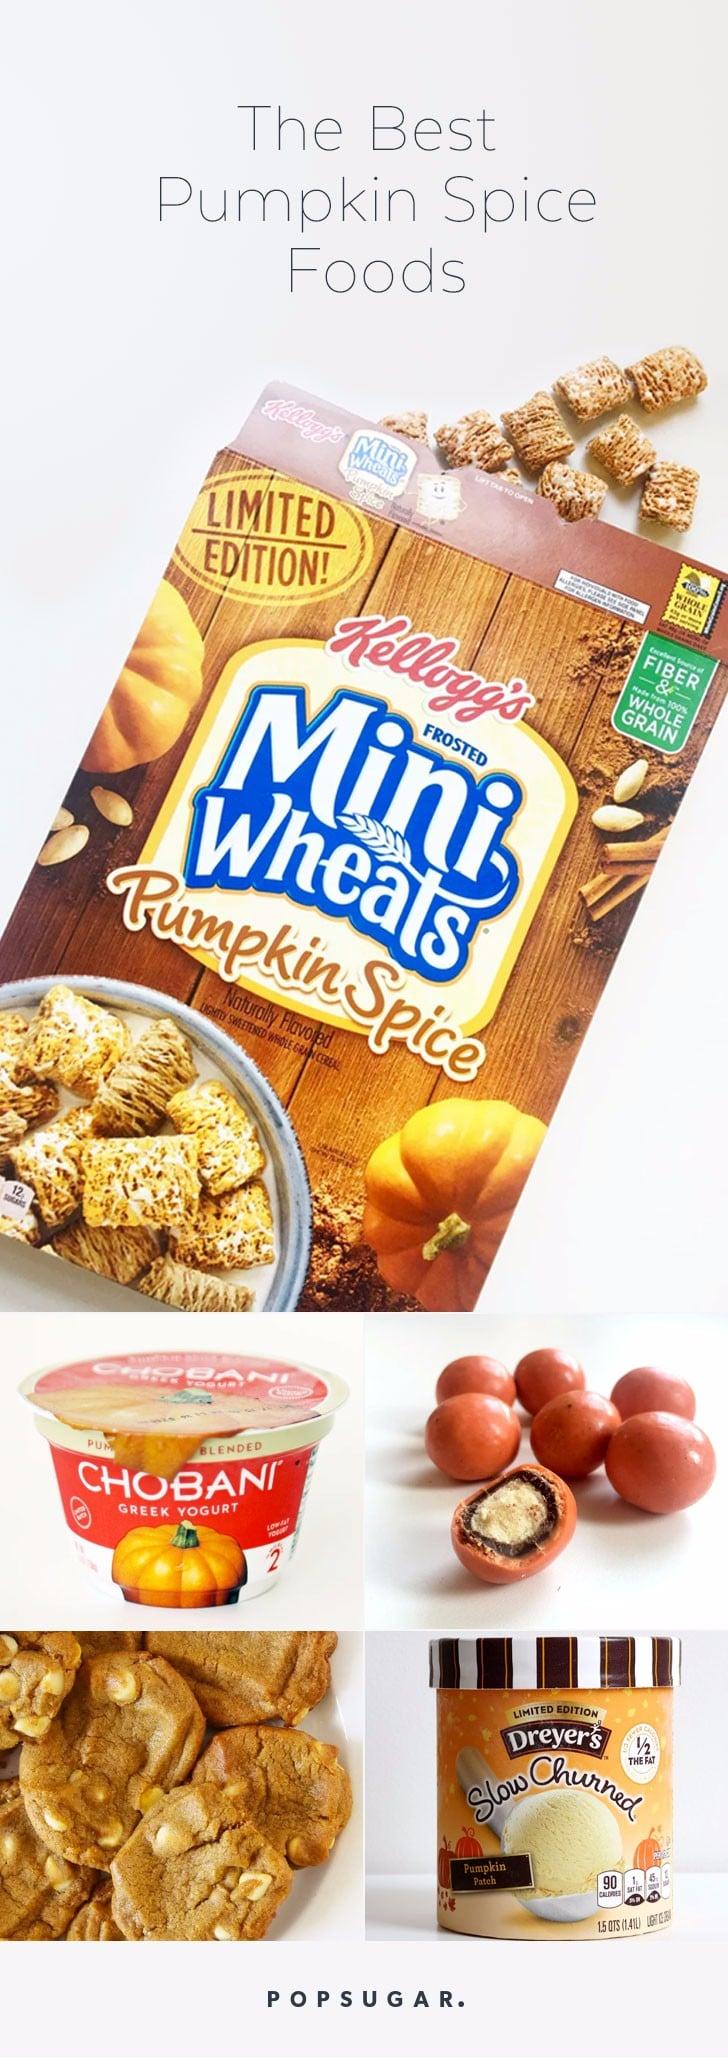 Pumpkin Spice Products | 2016